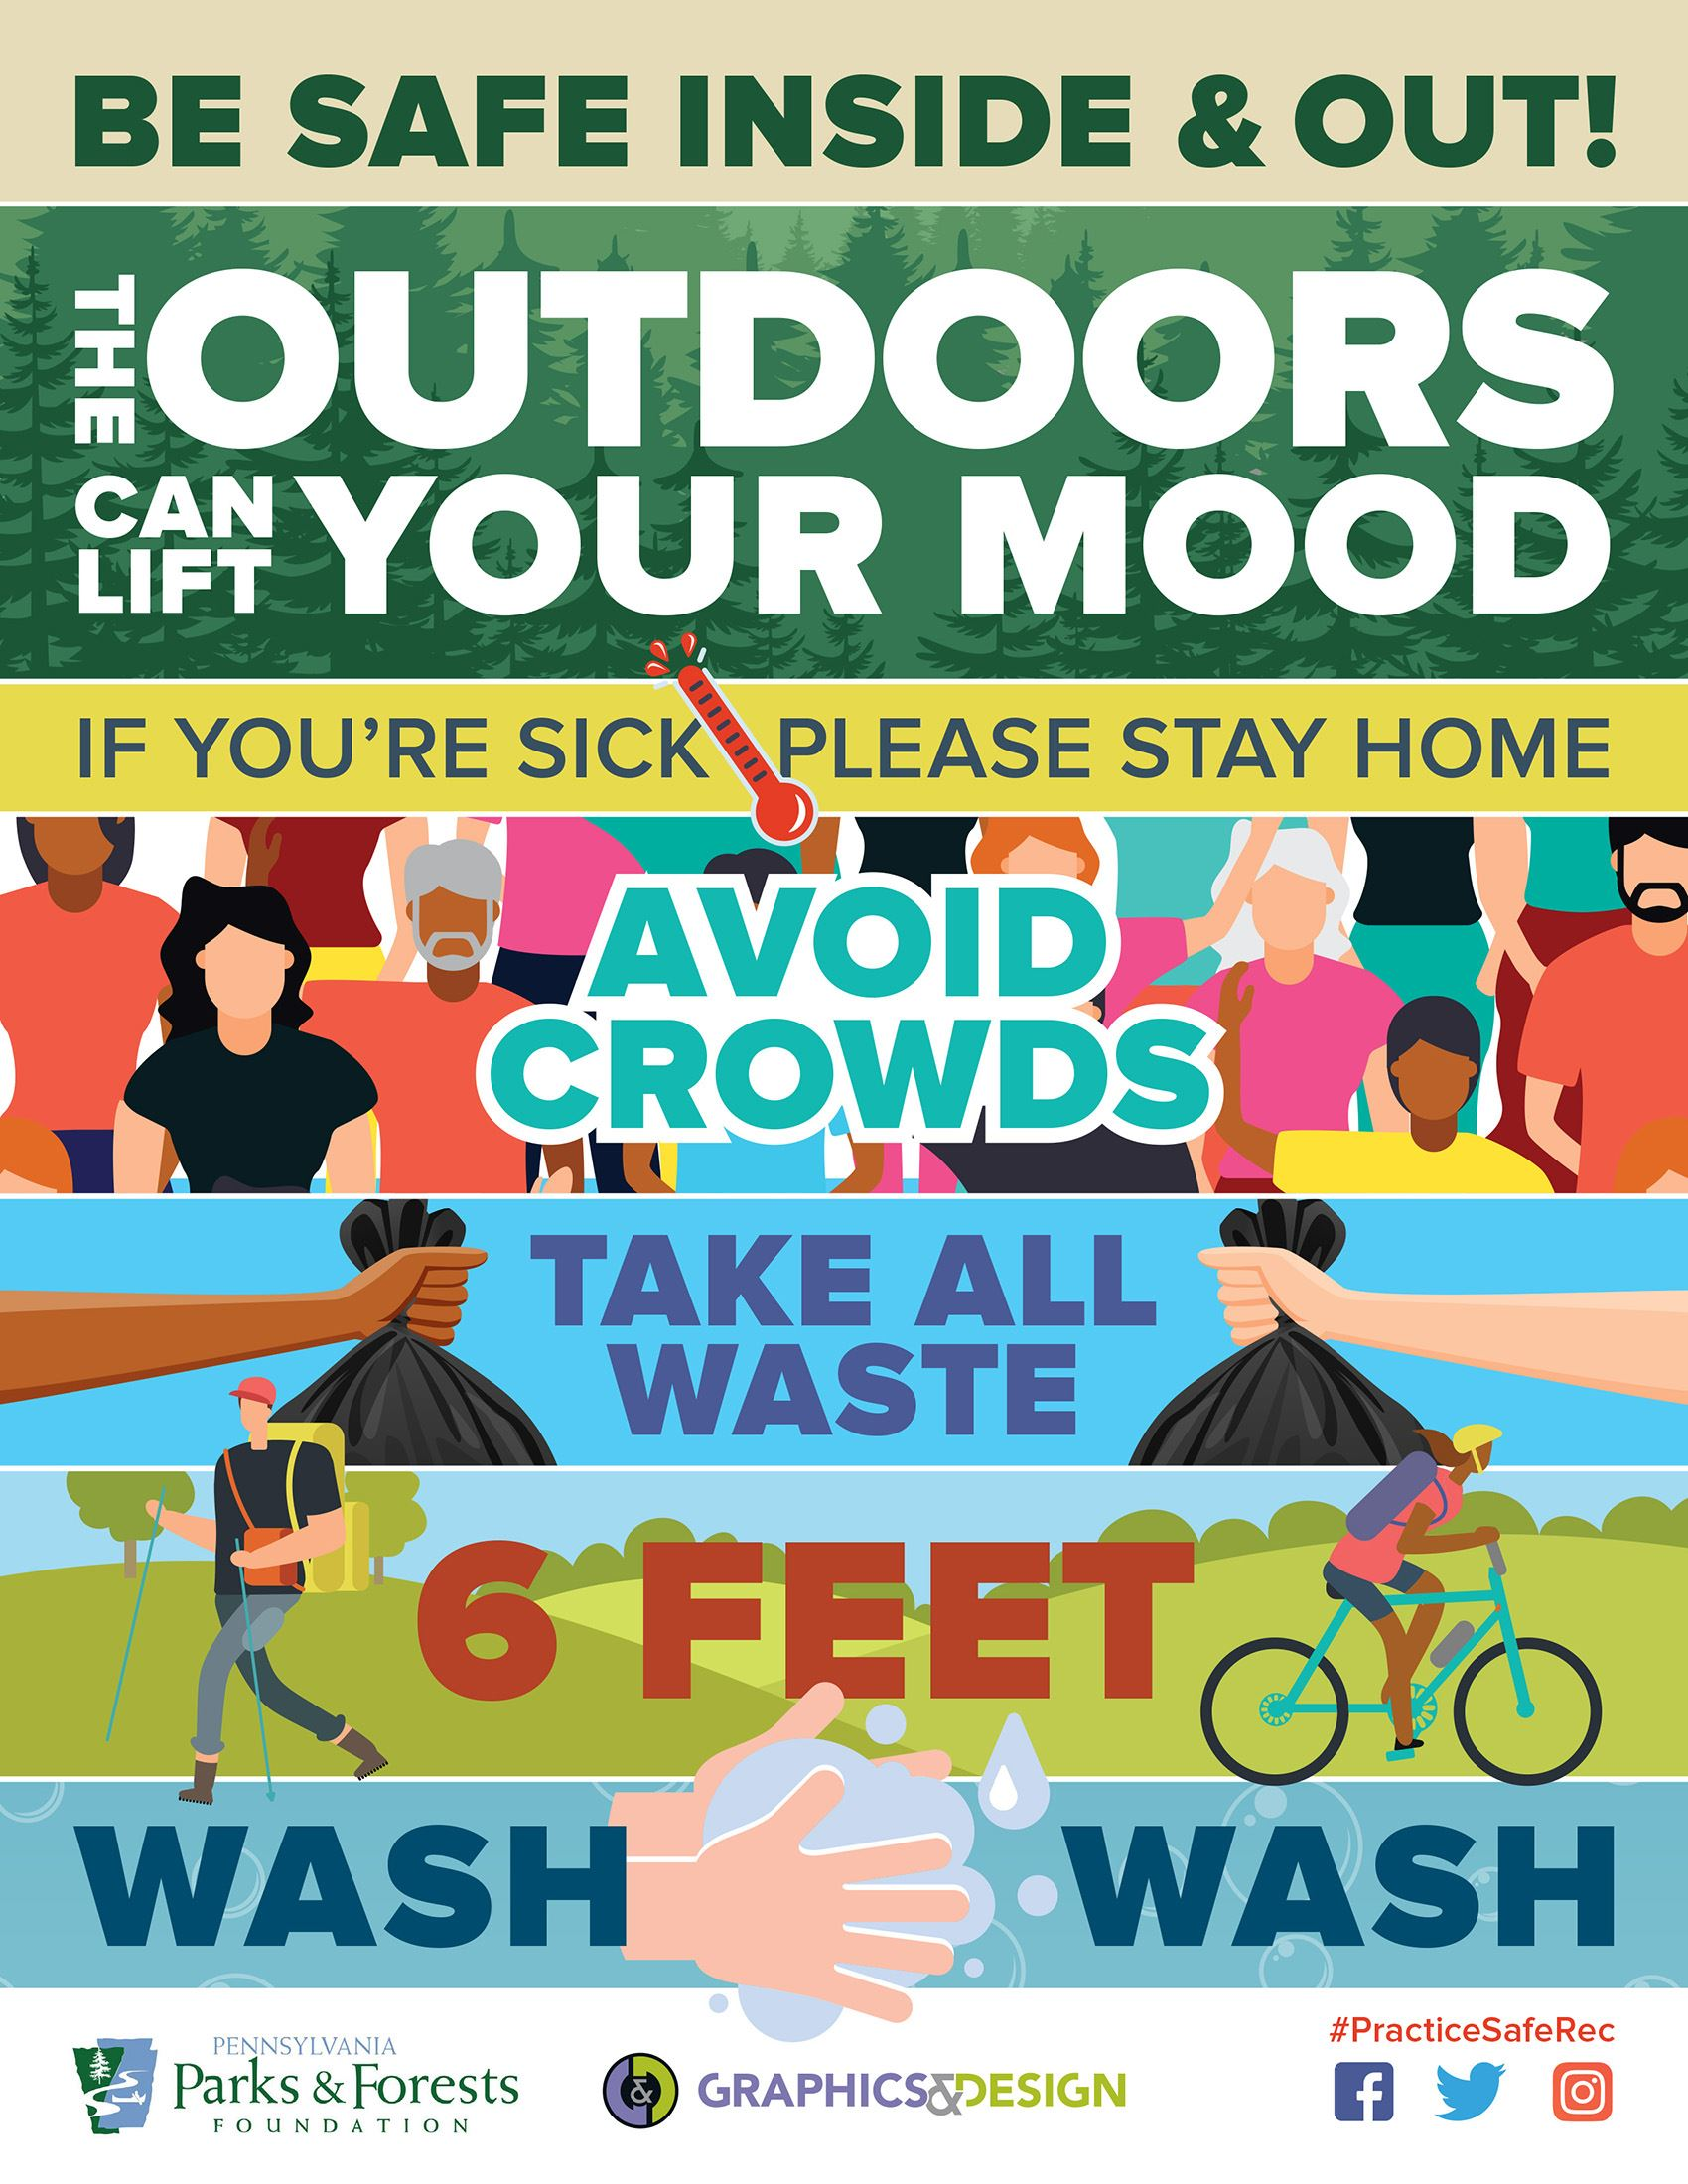 Stay home if sick, avoid crowds, take waste, stay six feet apart, wash hands